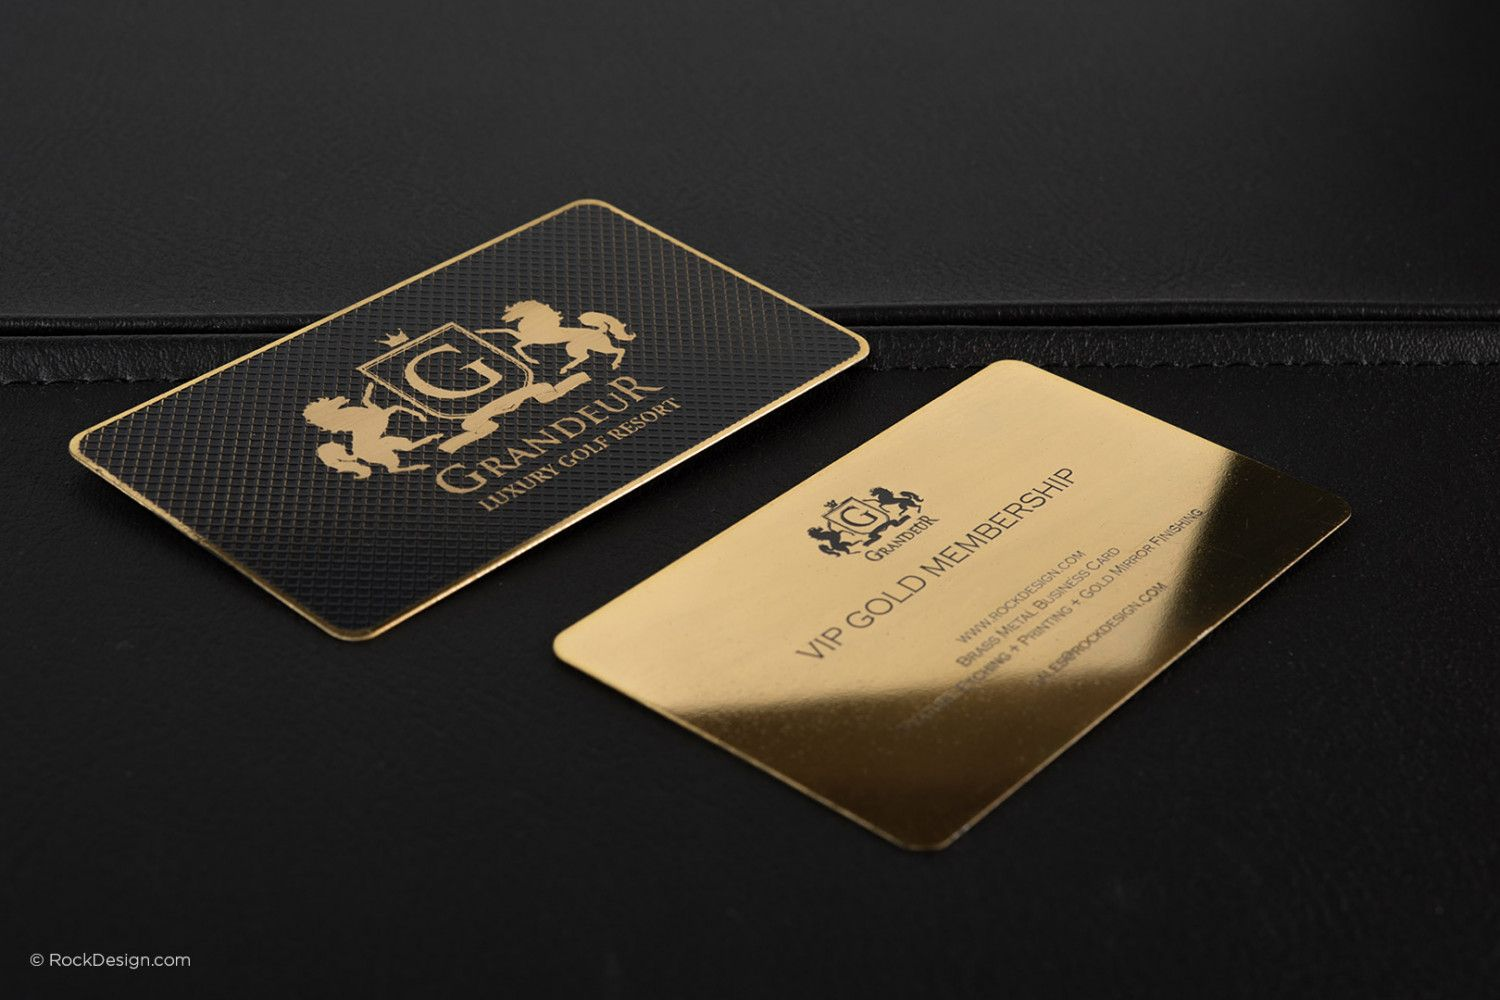 Gold Metal Business Cards Gold Business Card Metal Business Cards Luxury Business Cards